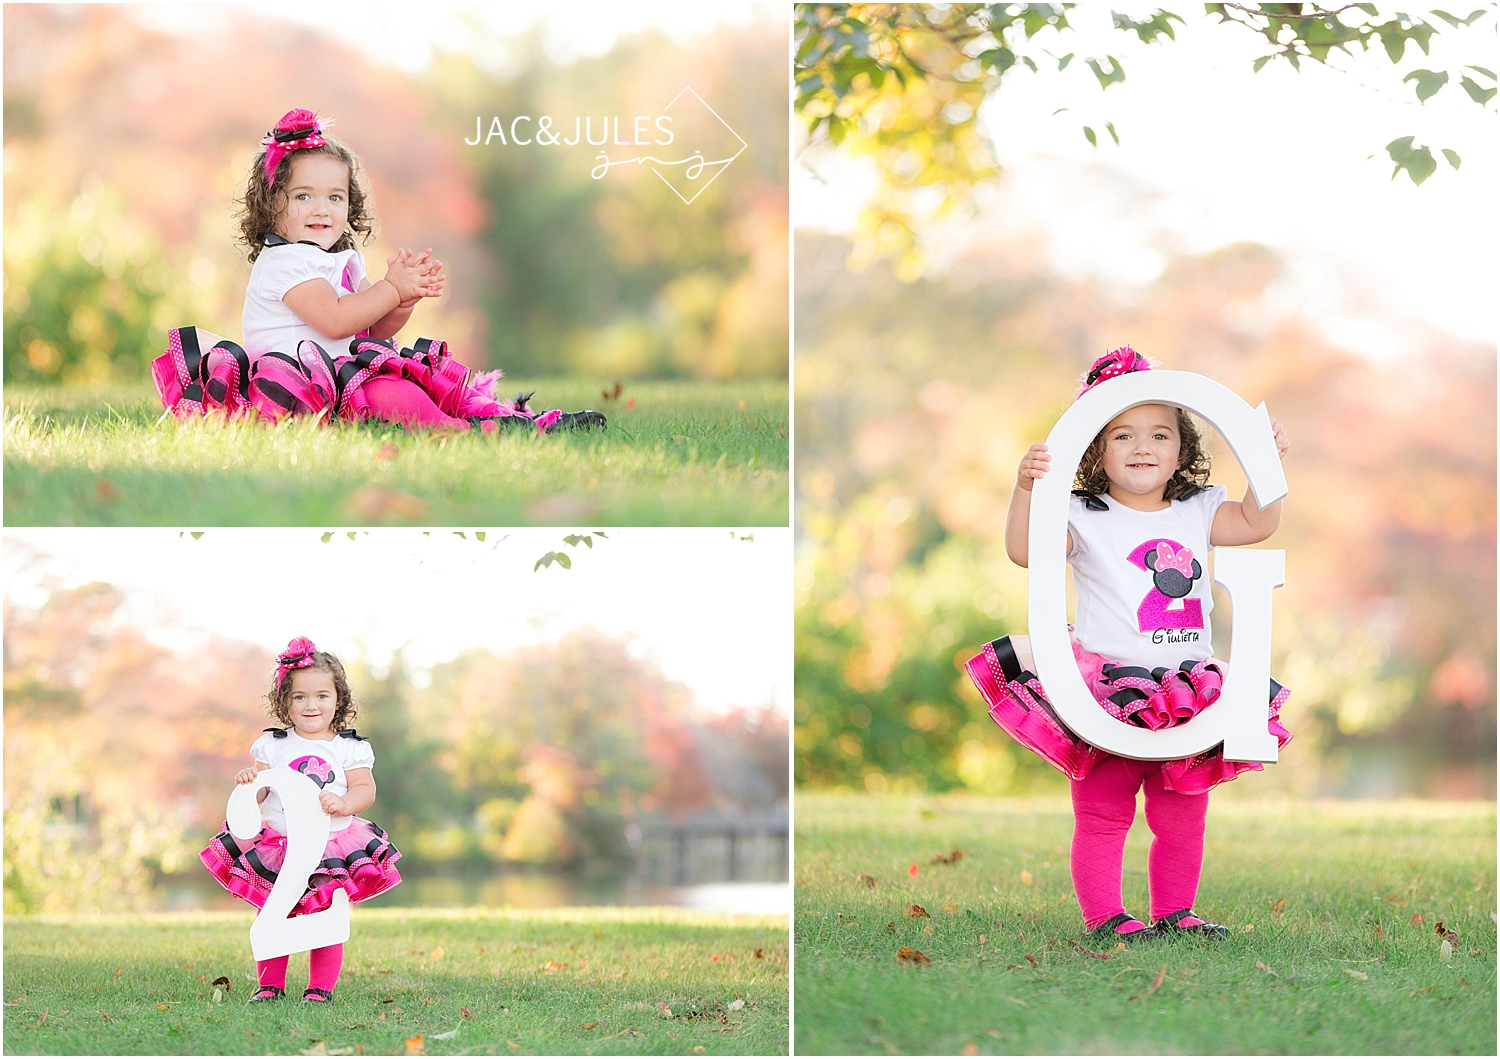 jacnjules photographs two year old child for her birthday at divine park in spring lake nj